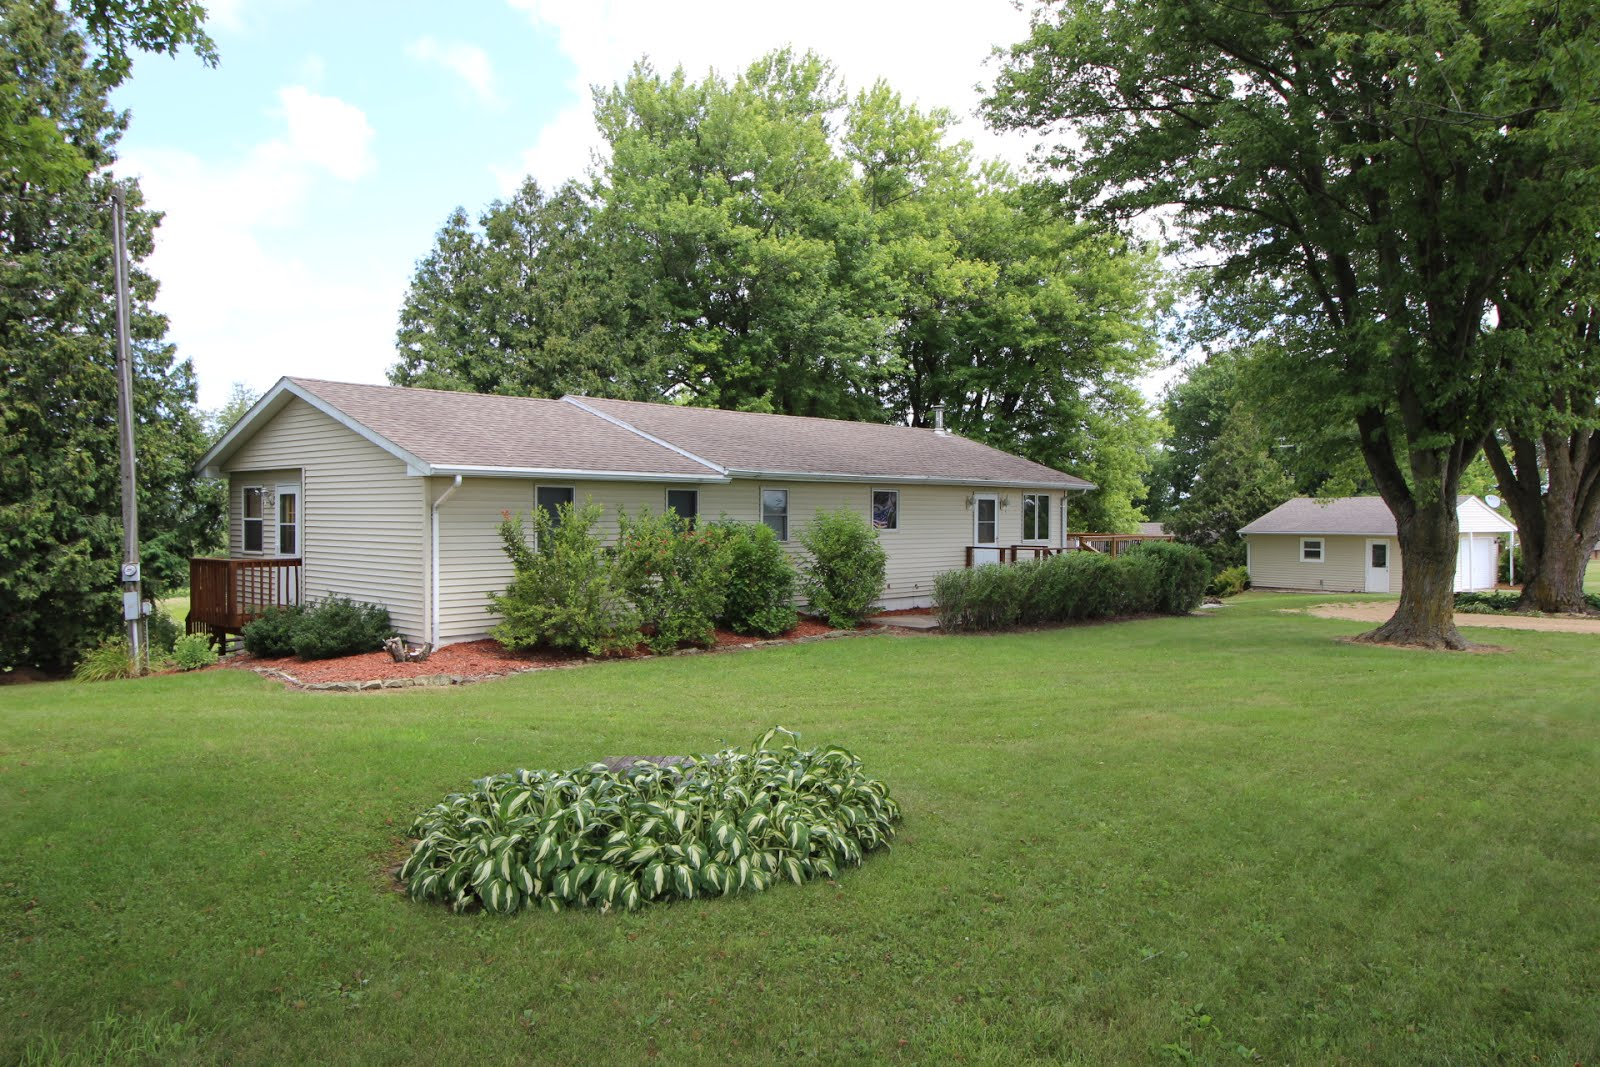 18334 55th Street, Maquoketa, IA $189,900 SOLD